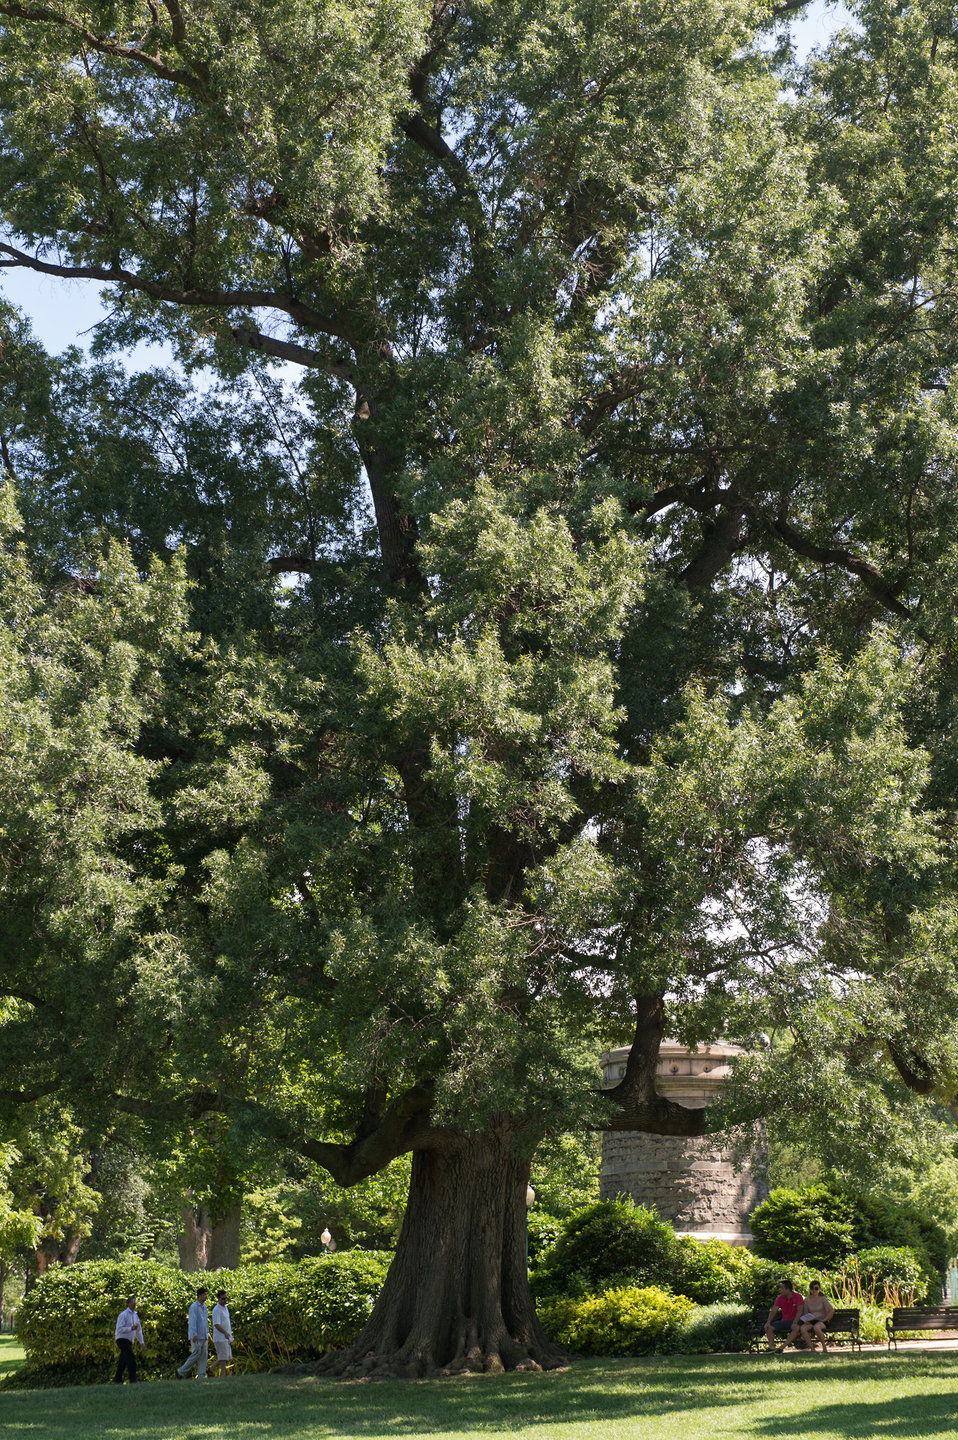 Willow Oak Tree on the U.S. Capitol Grounds